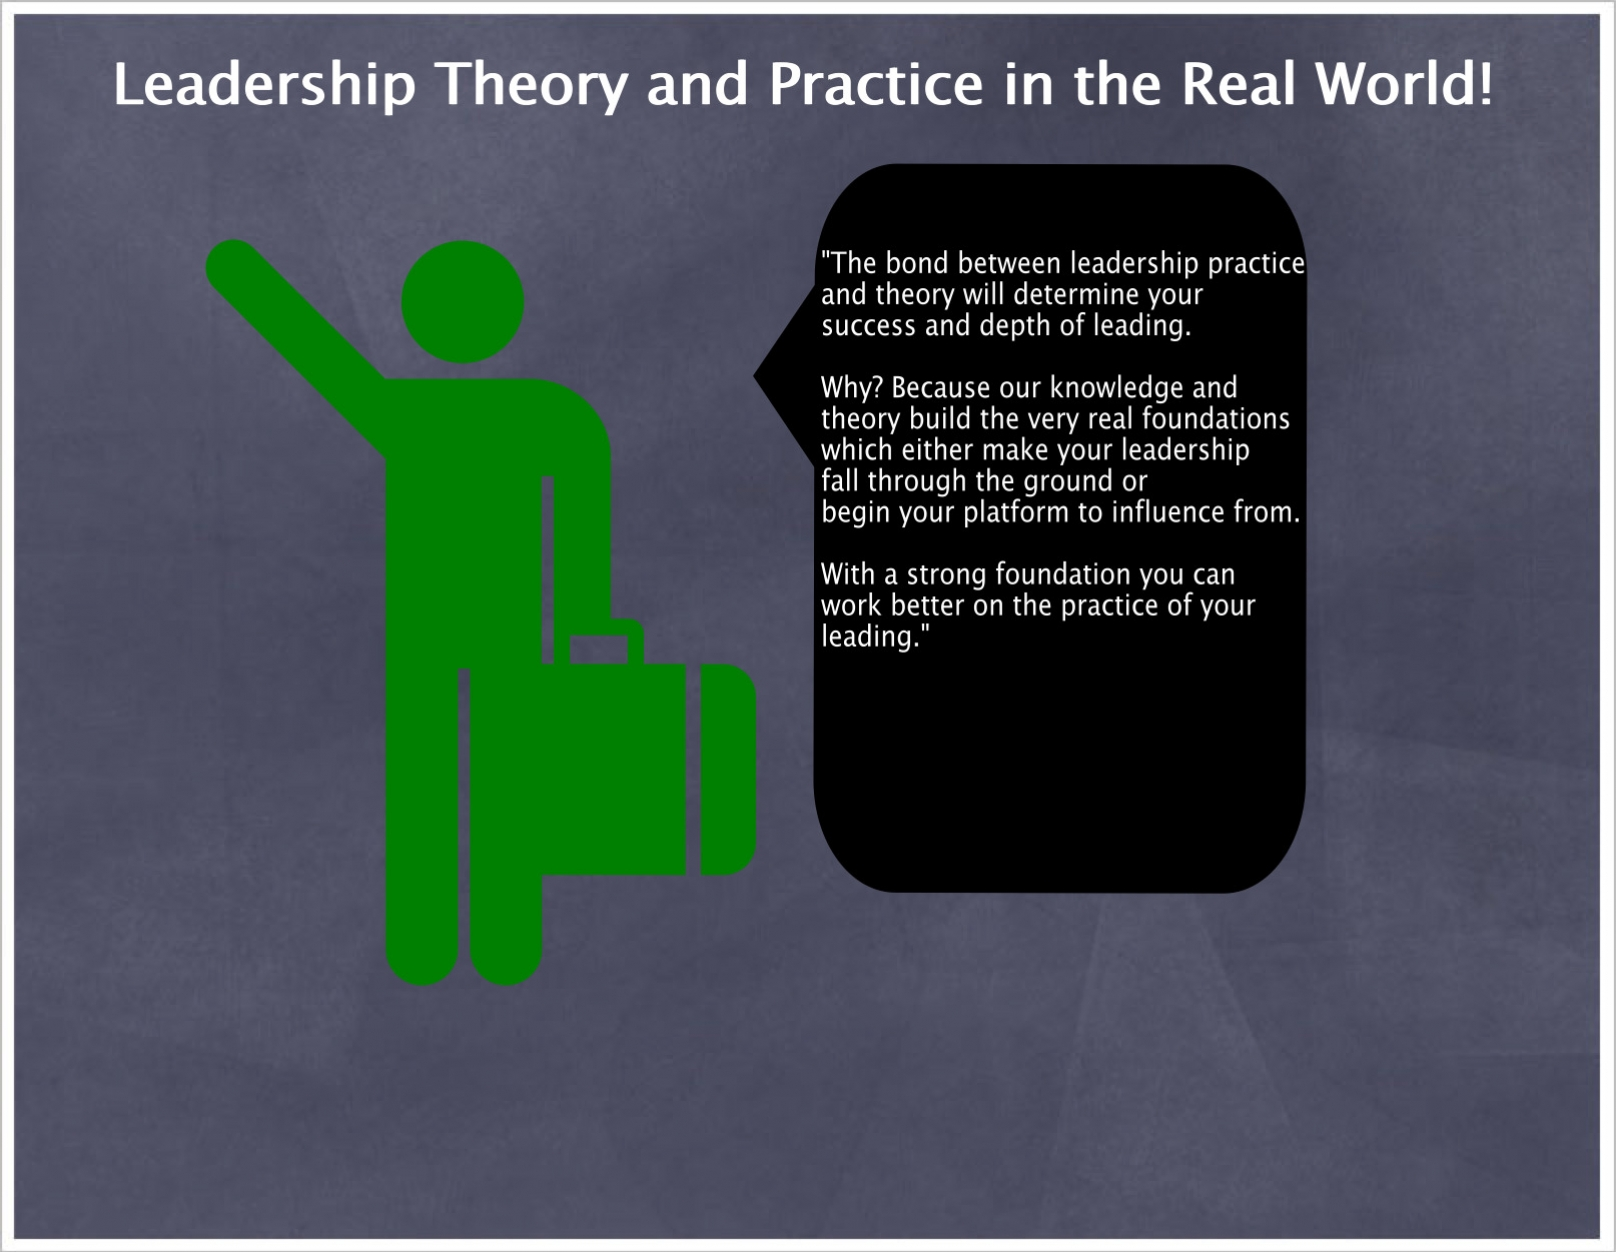 Leadership Theories and Practice